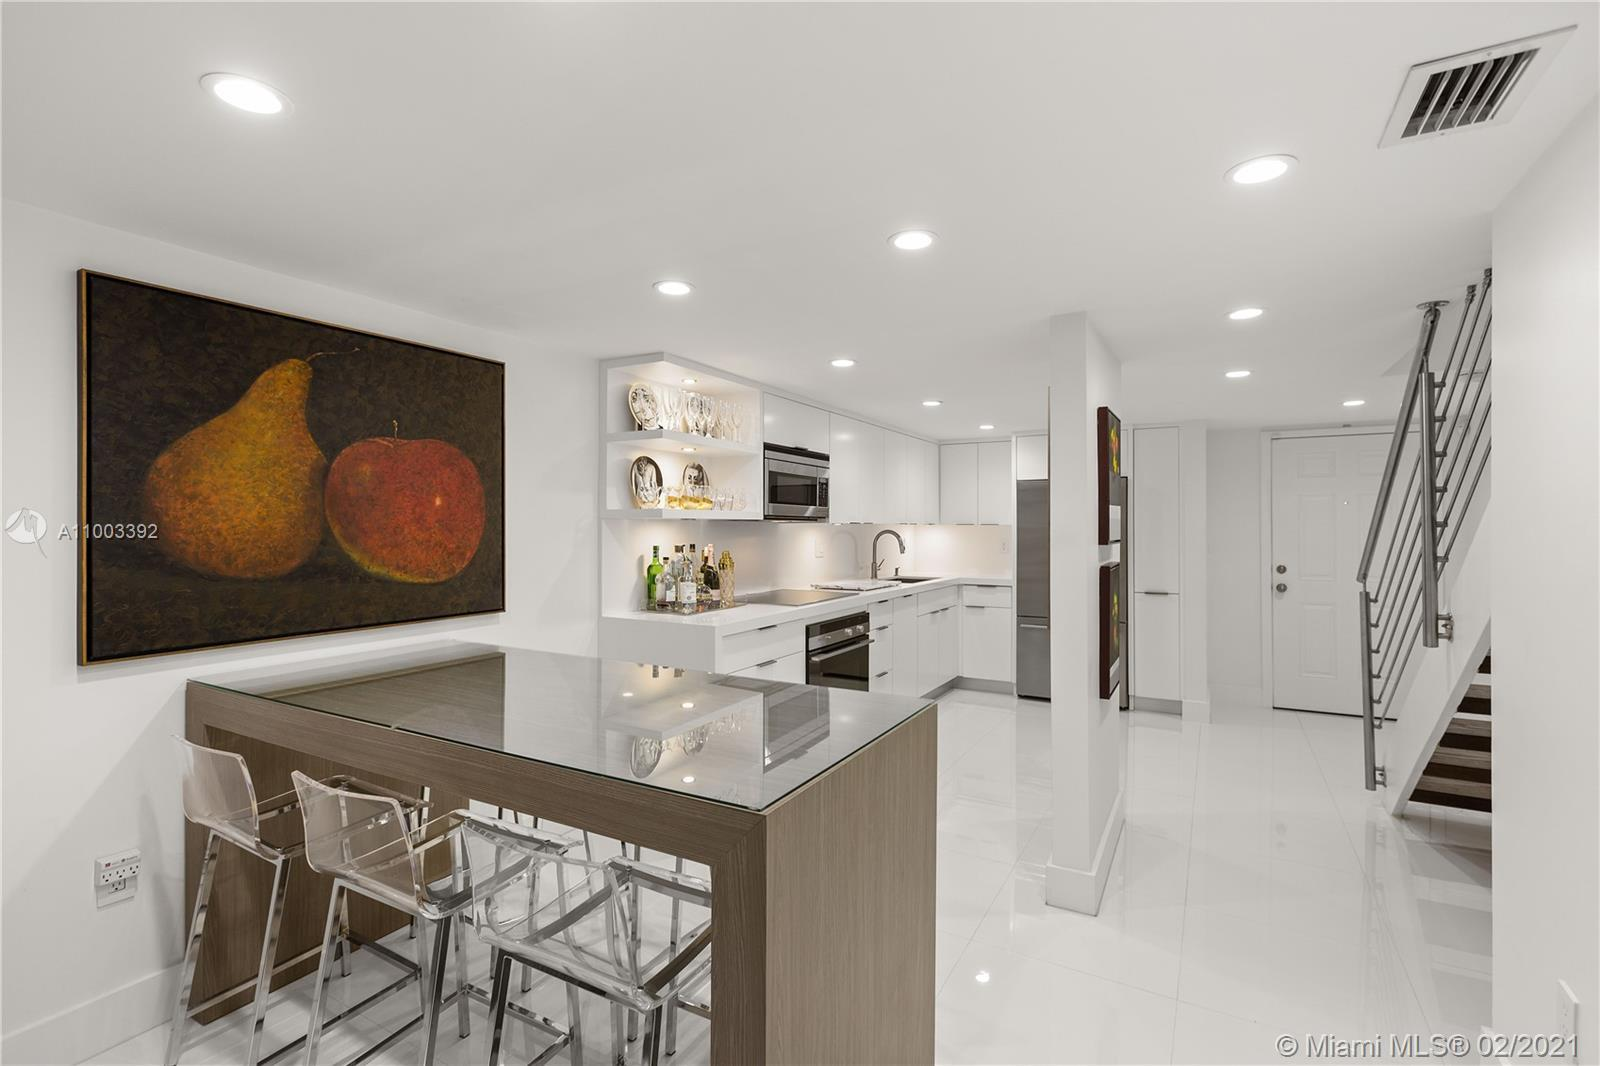 Completely renovated two-level turnkey residence. The first level offers an open concept floor plan